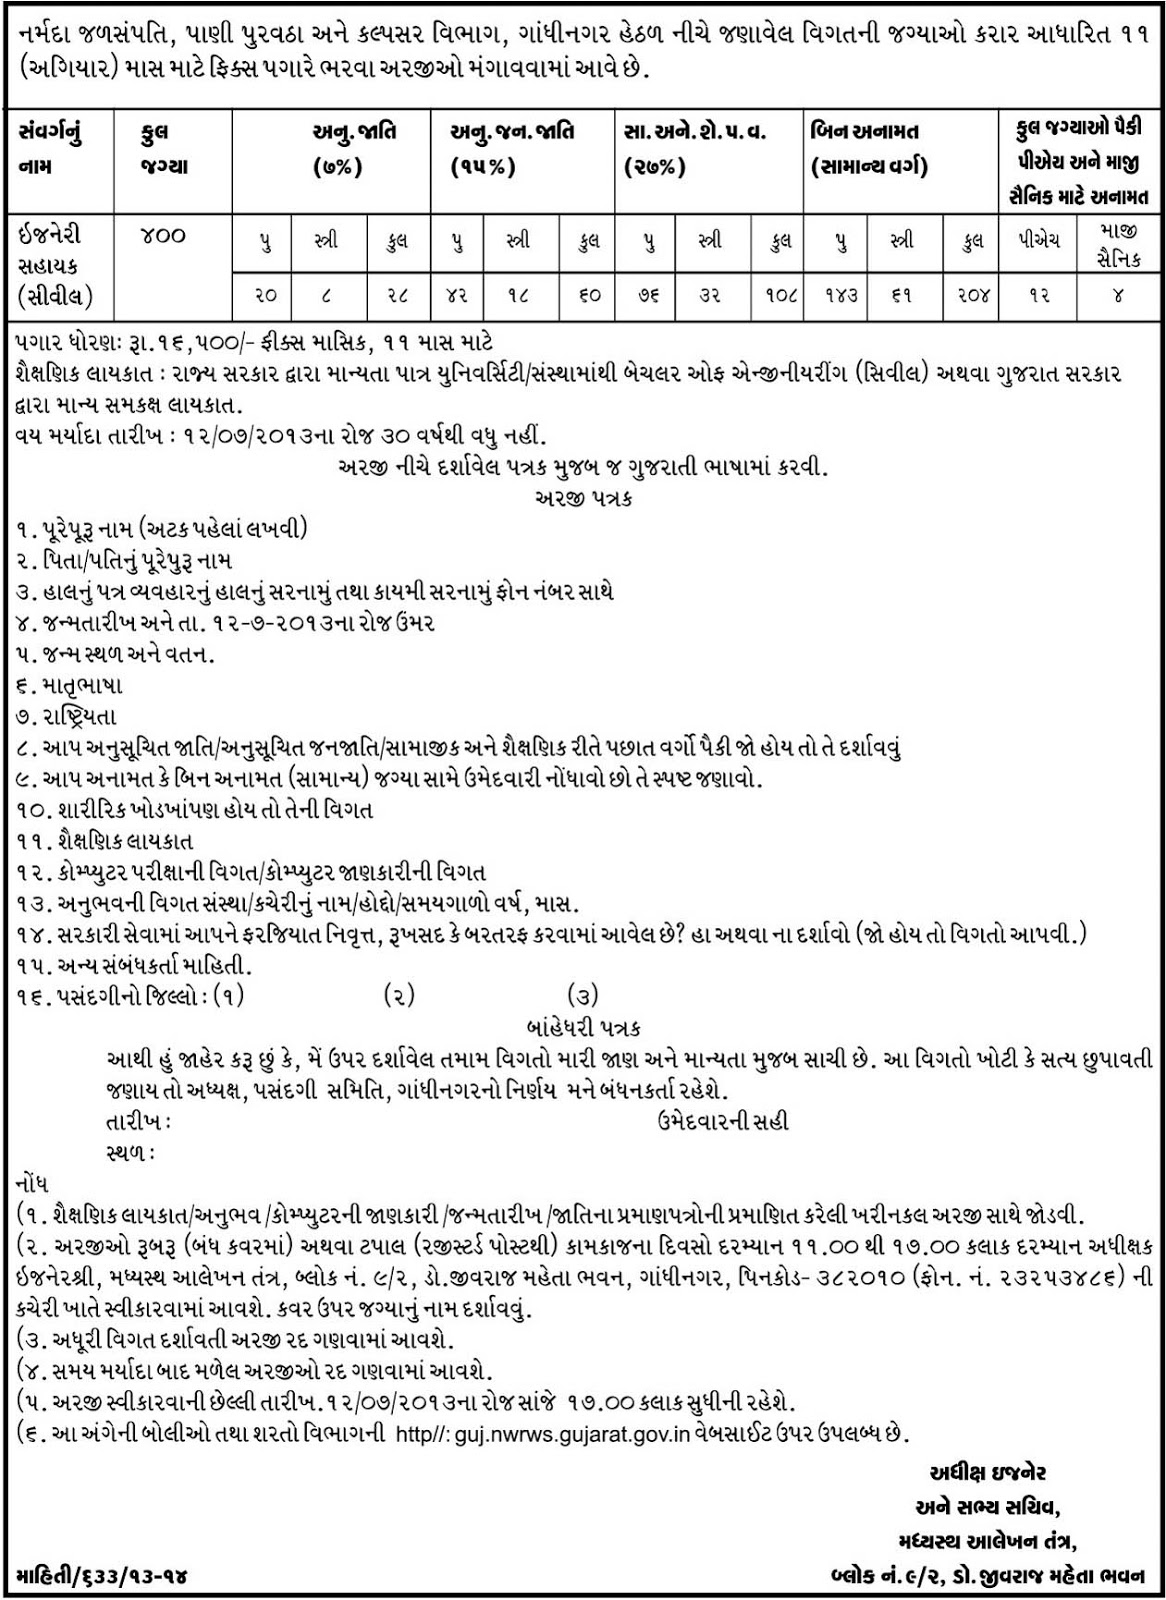 26-june2 Job Application Form In Gujarati on job openings, contact form, job payment receipt, job applications you can print, agreement form, job opportunity, job search, job vacancy, employee benefits form, job resume, job requirements, job advertisement, job letter, job applications online, cover letter form, cv form,